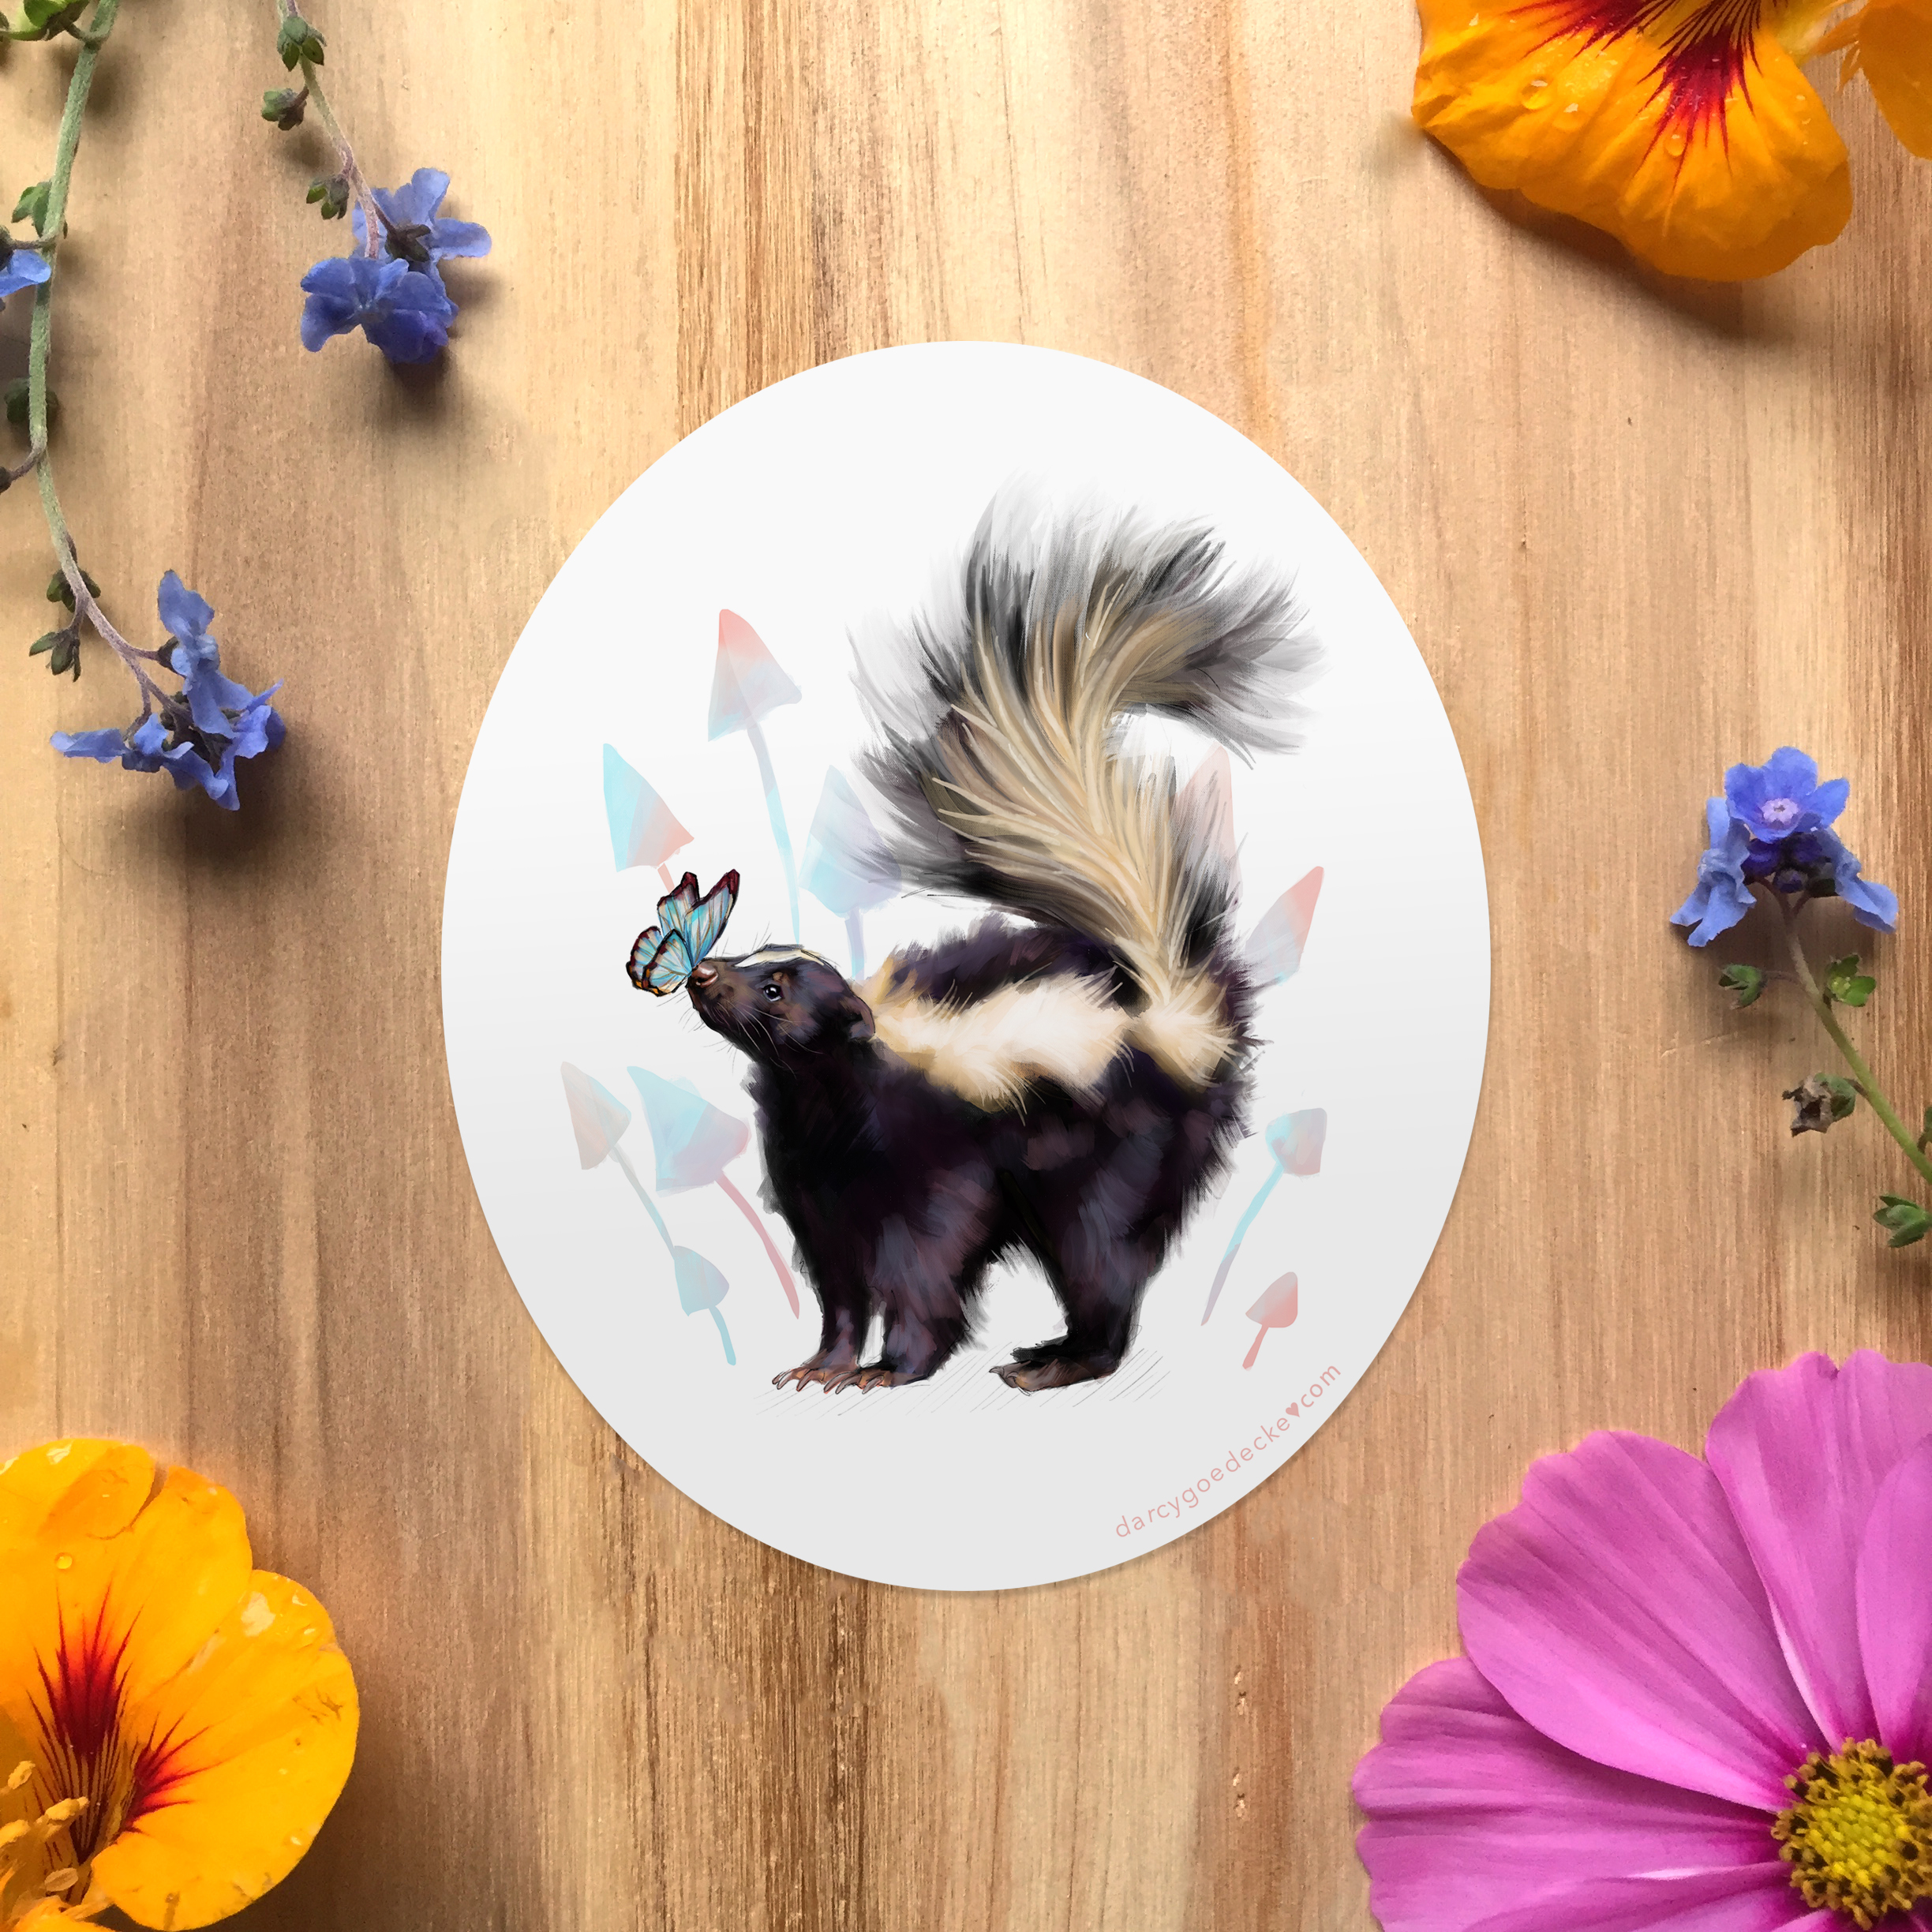 Skunk Sticker by Darcy Goedecke